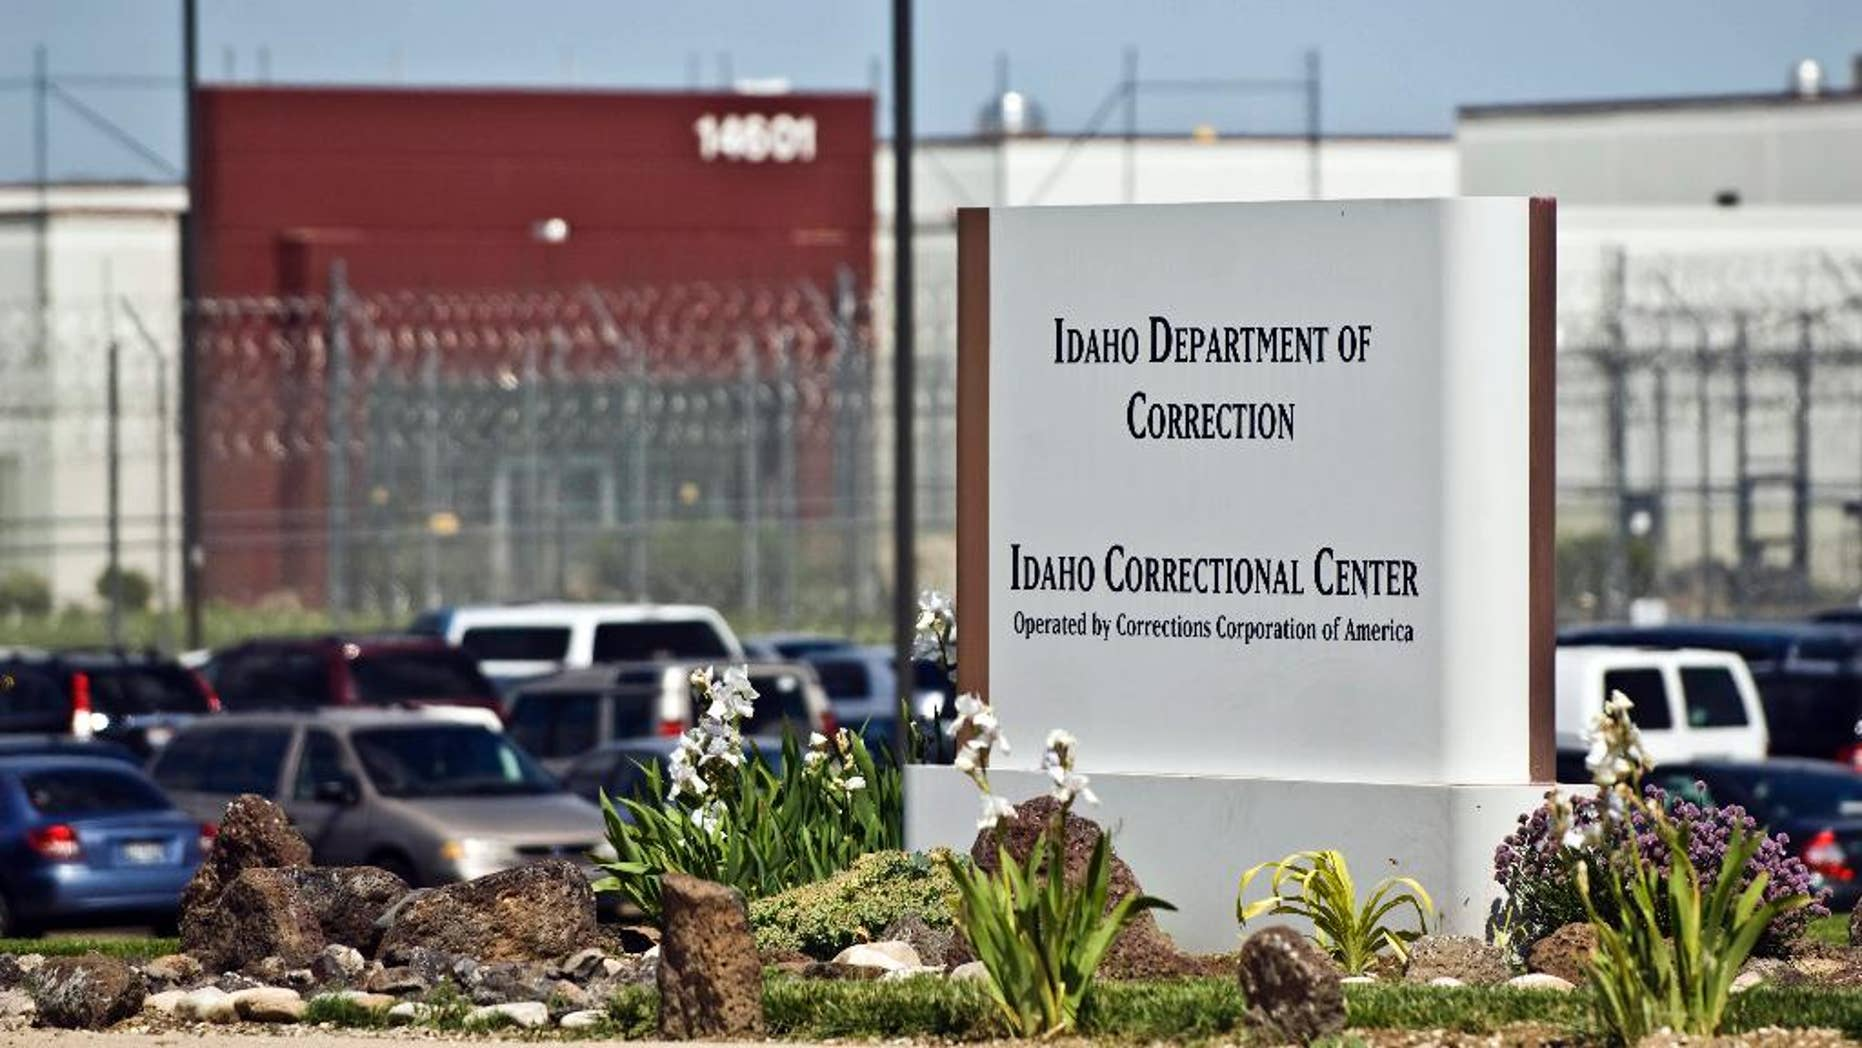 FILE - This June 15, 2010 file photo shows the Idaho Correctional Center south of Boise, Idaho. A handful of U.S. prison leaders like Idaho Department of Correction Director Kevin Kempf are trying to incorporate European principals, where correctional officers strive to make the prison experience as close to normal life as possible, into prisons back home. They hope the changes will lead to lower recidivism rates, happier staffers and inmates who are better prepared to be good neighbors once they are released. (AP Photo/Charlie Litchfield, File)